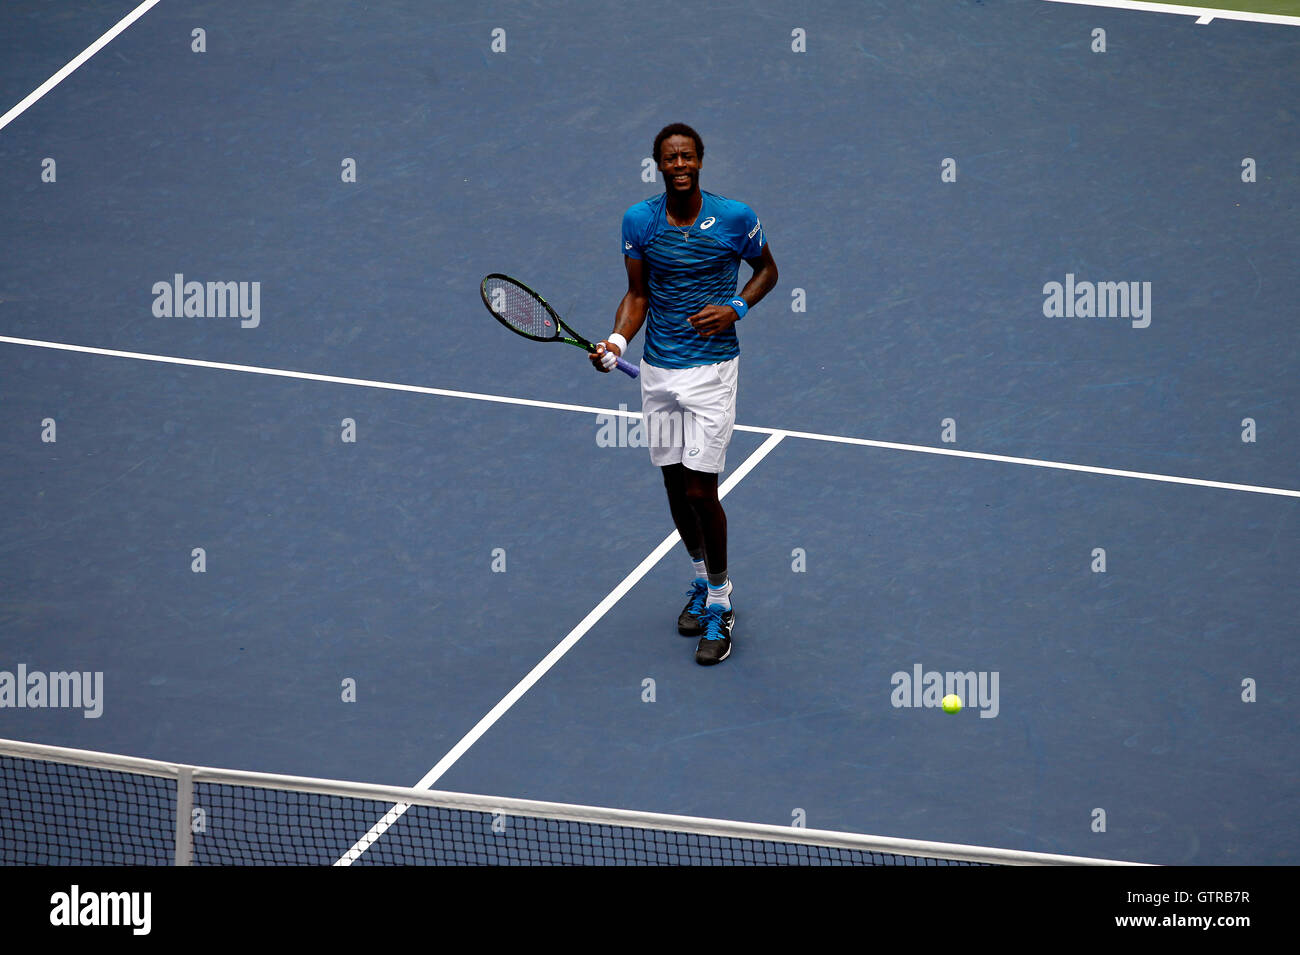 New York, United States. 09th Sep, 2016. Gael Monfils of France reacts to a shot during his semi final match against - Stock Image